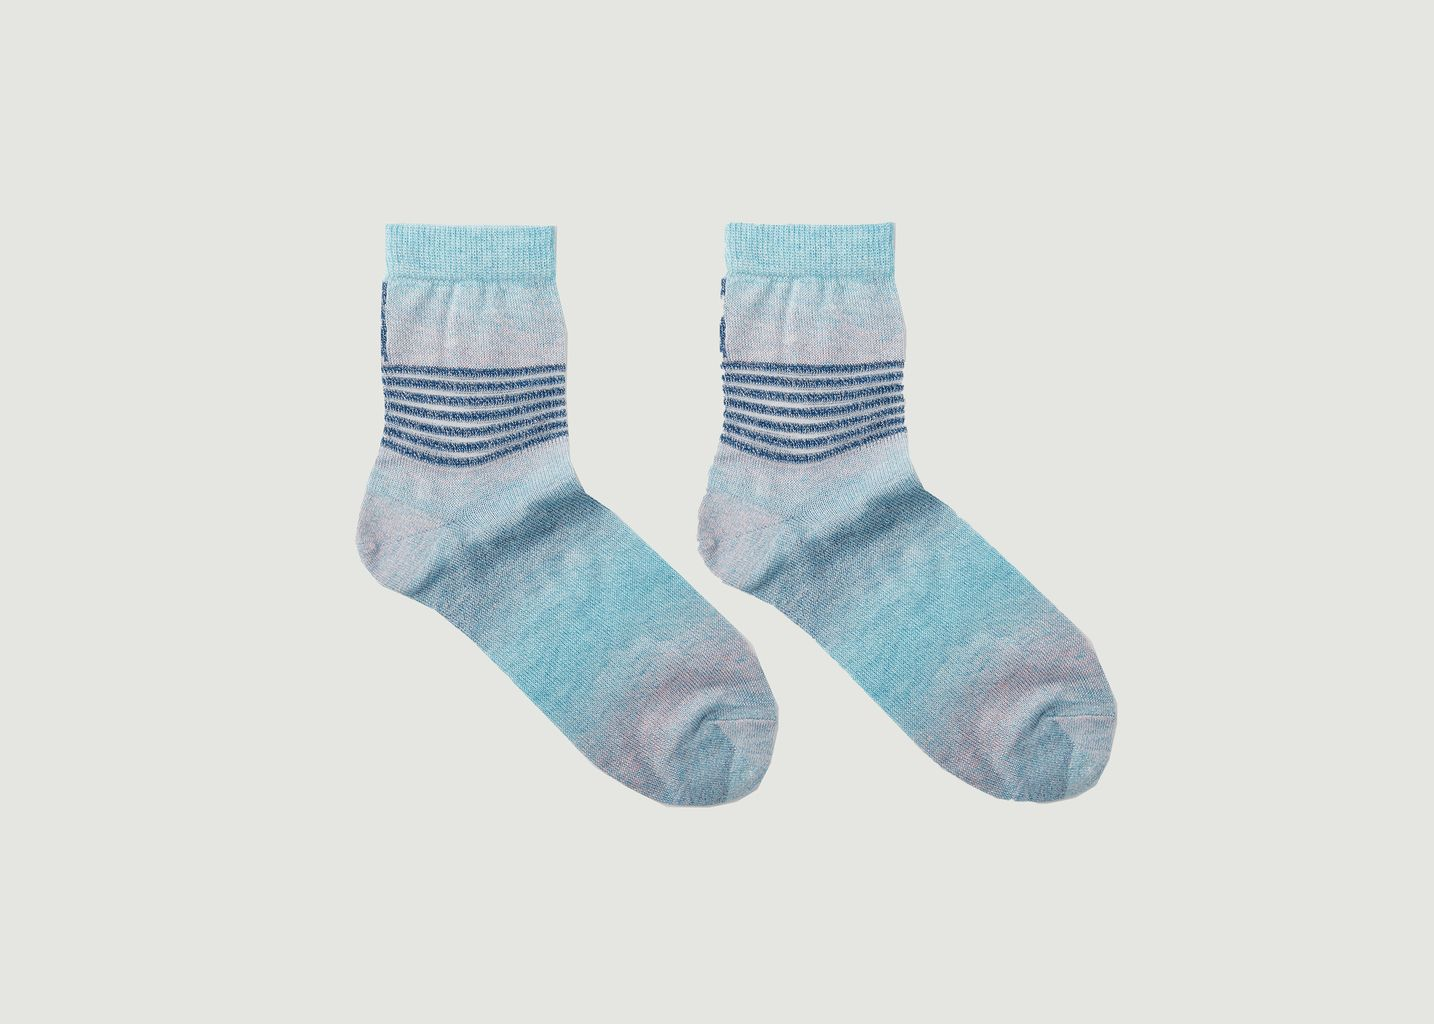 Chaussette Tie And Dye Borealis - Badelaine